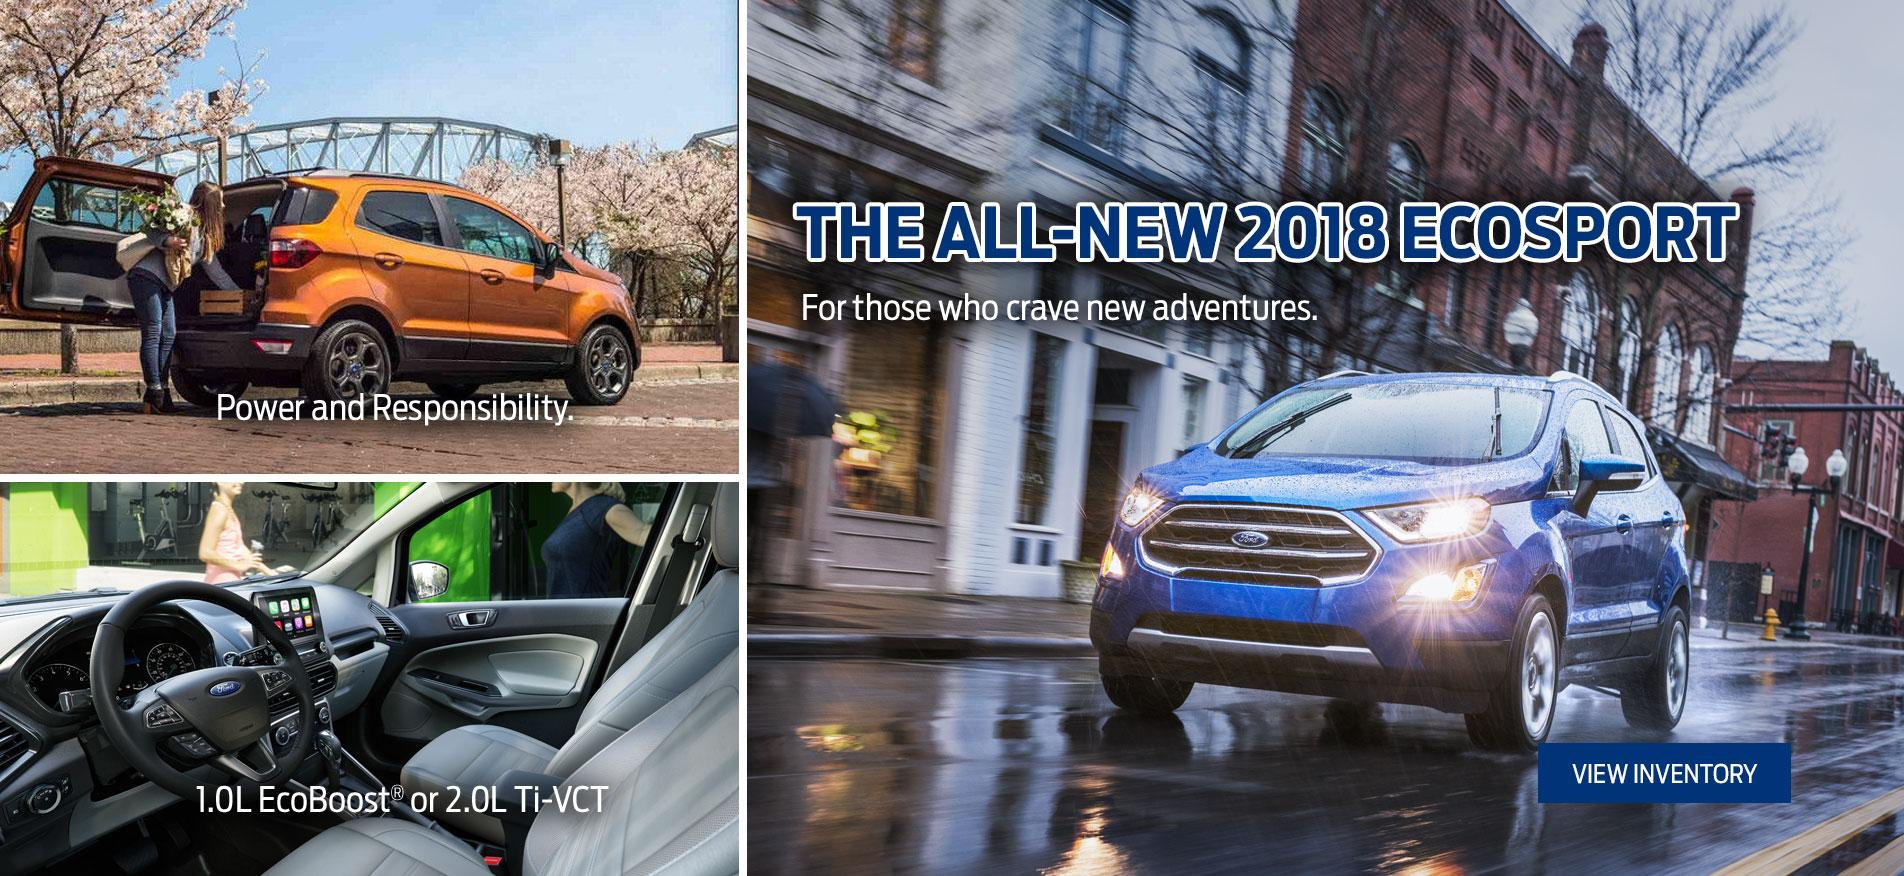 2018 Ecosport Dearborn Ford Kamloops